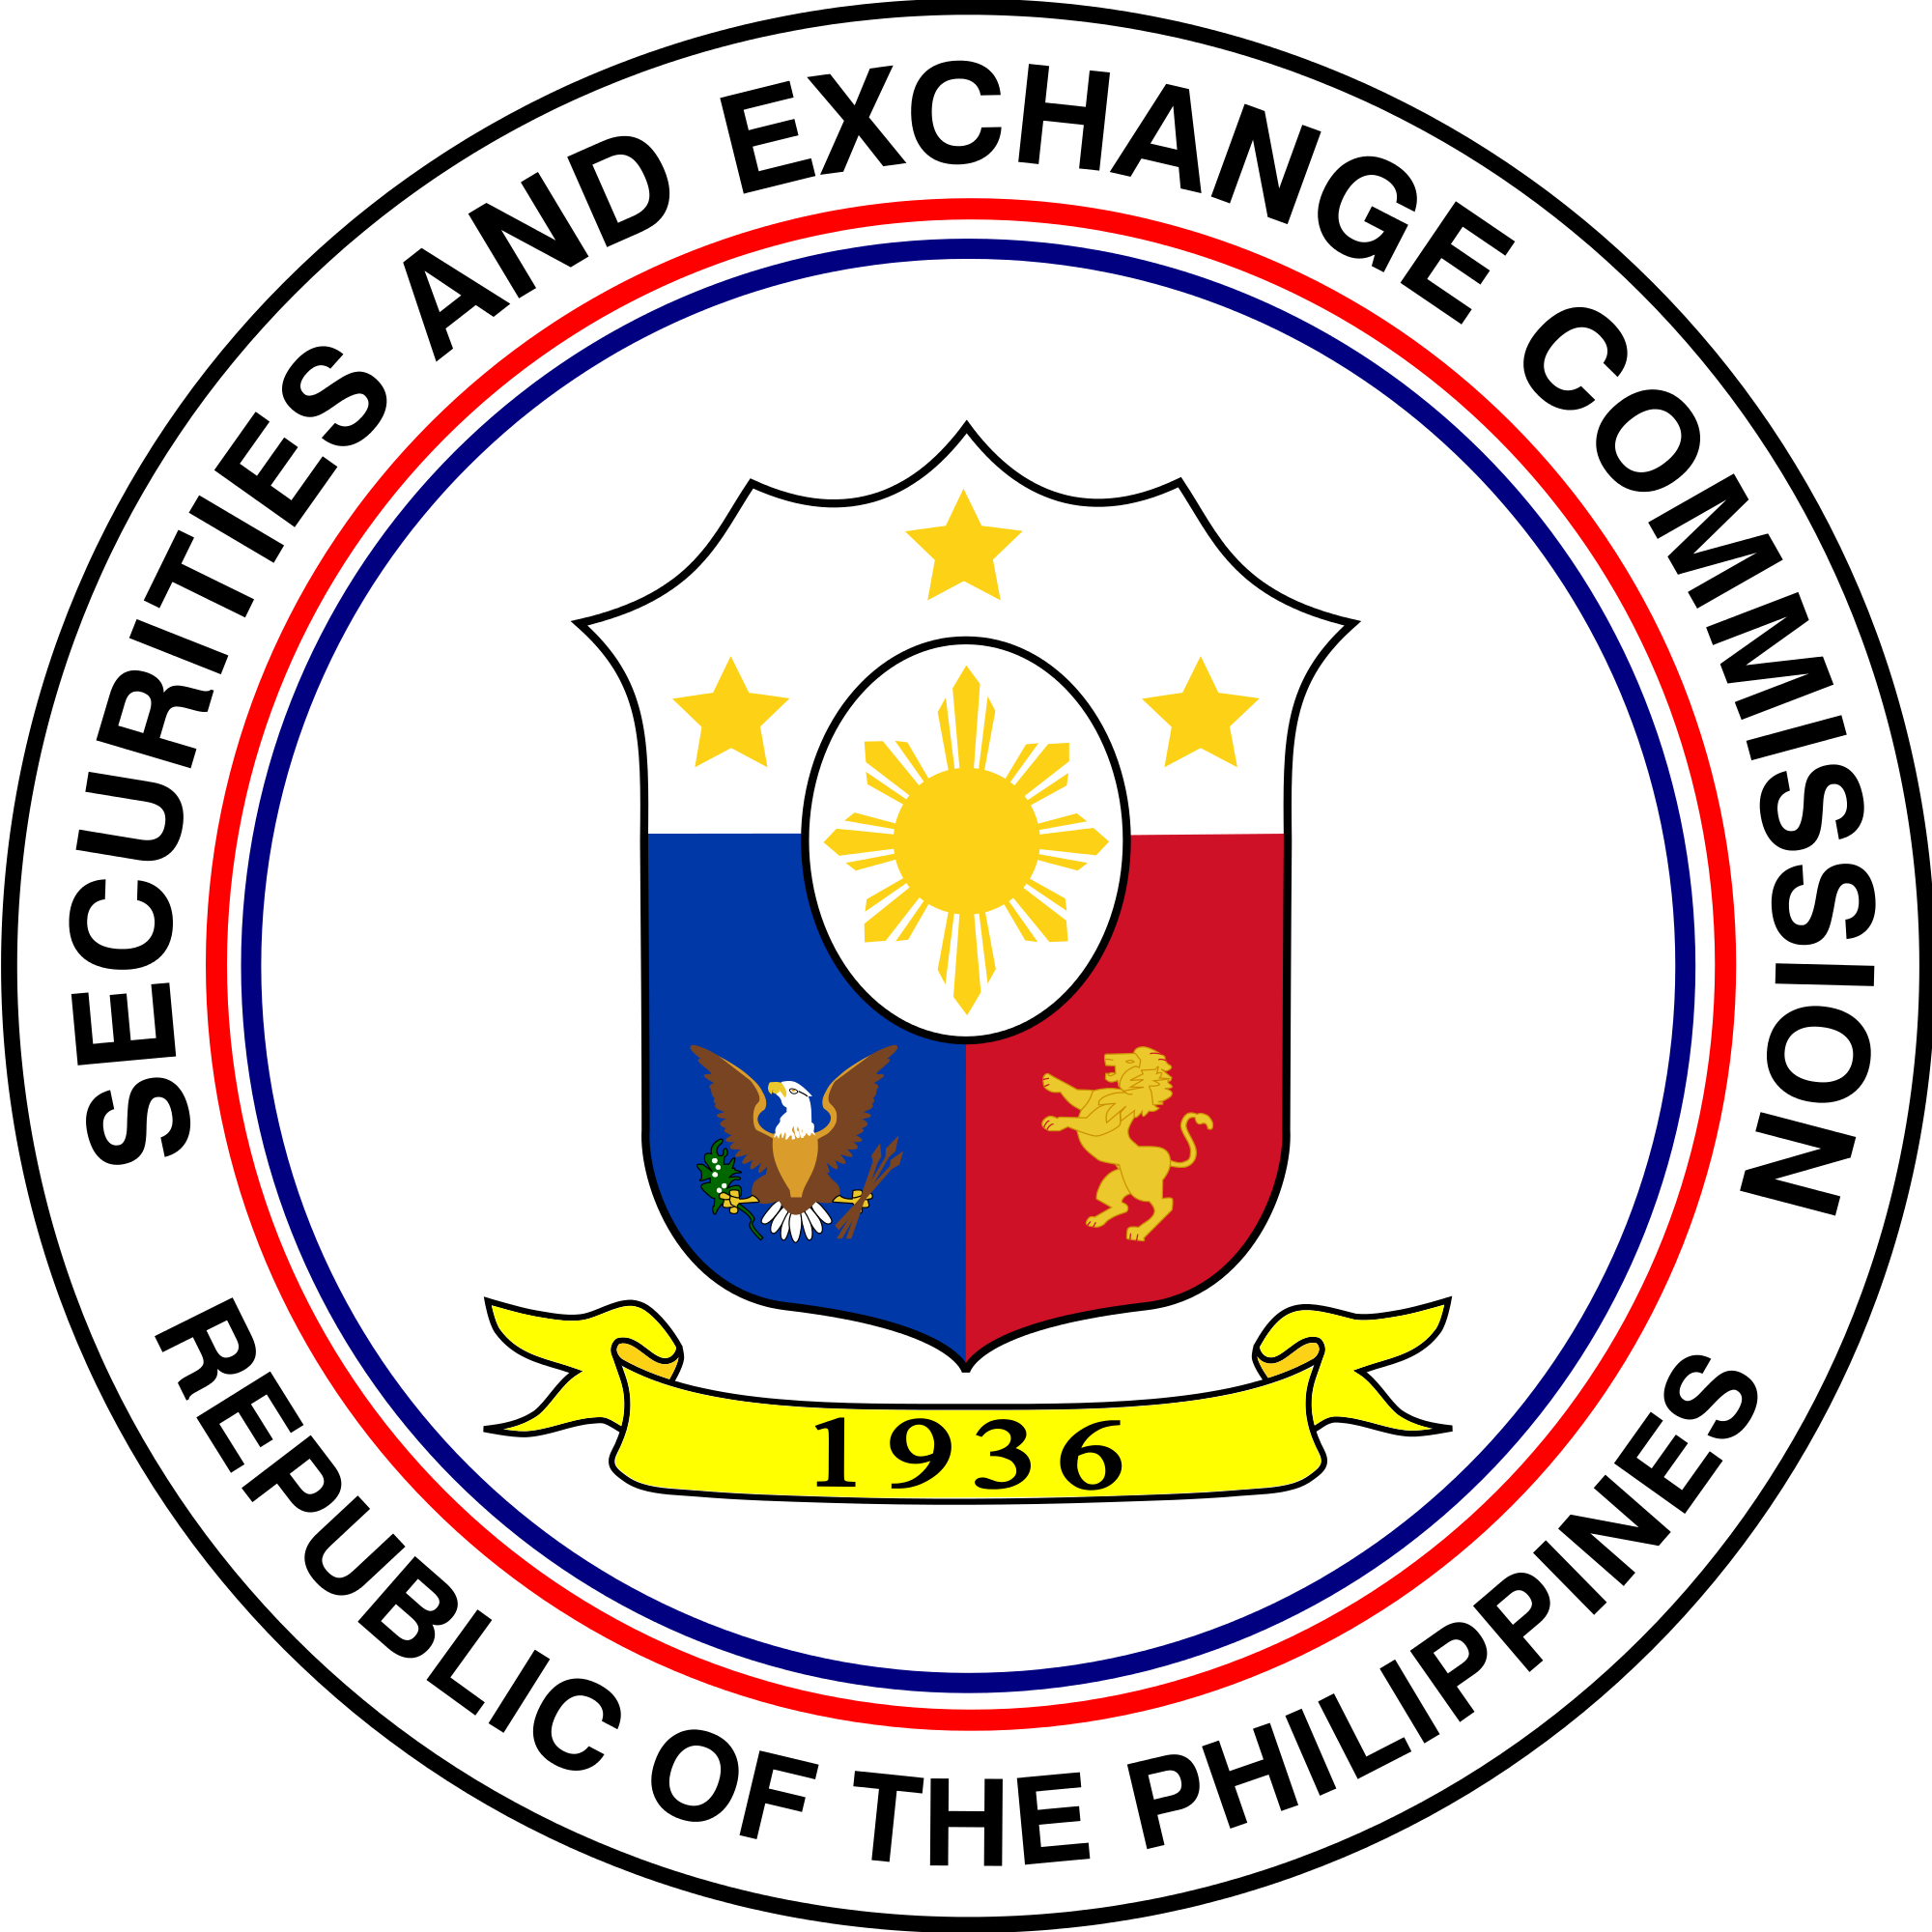 Philippines SEC To Release Draft Crypto Exchange Regulations This Month